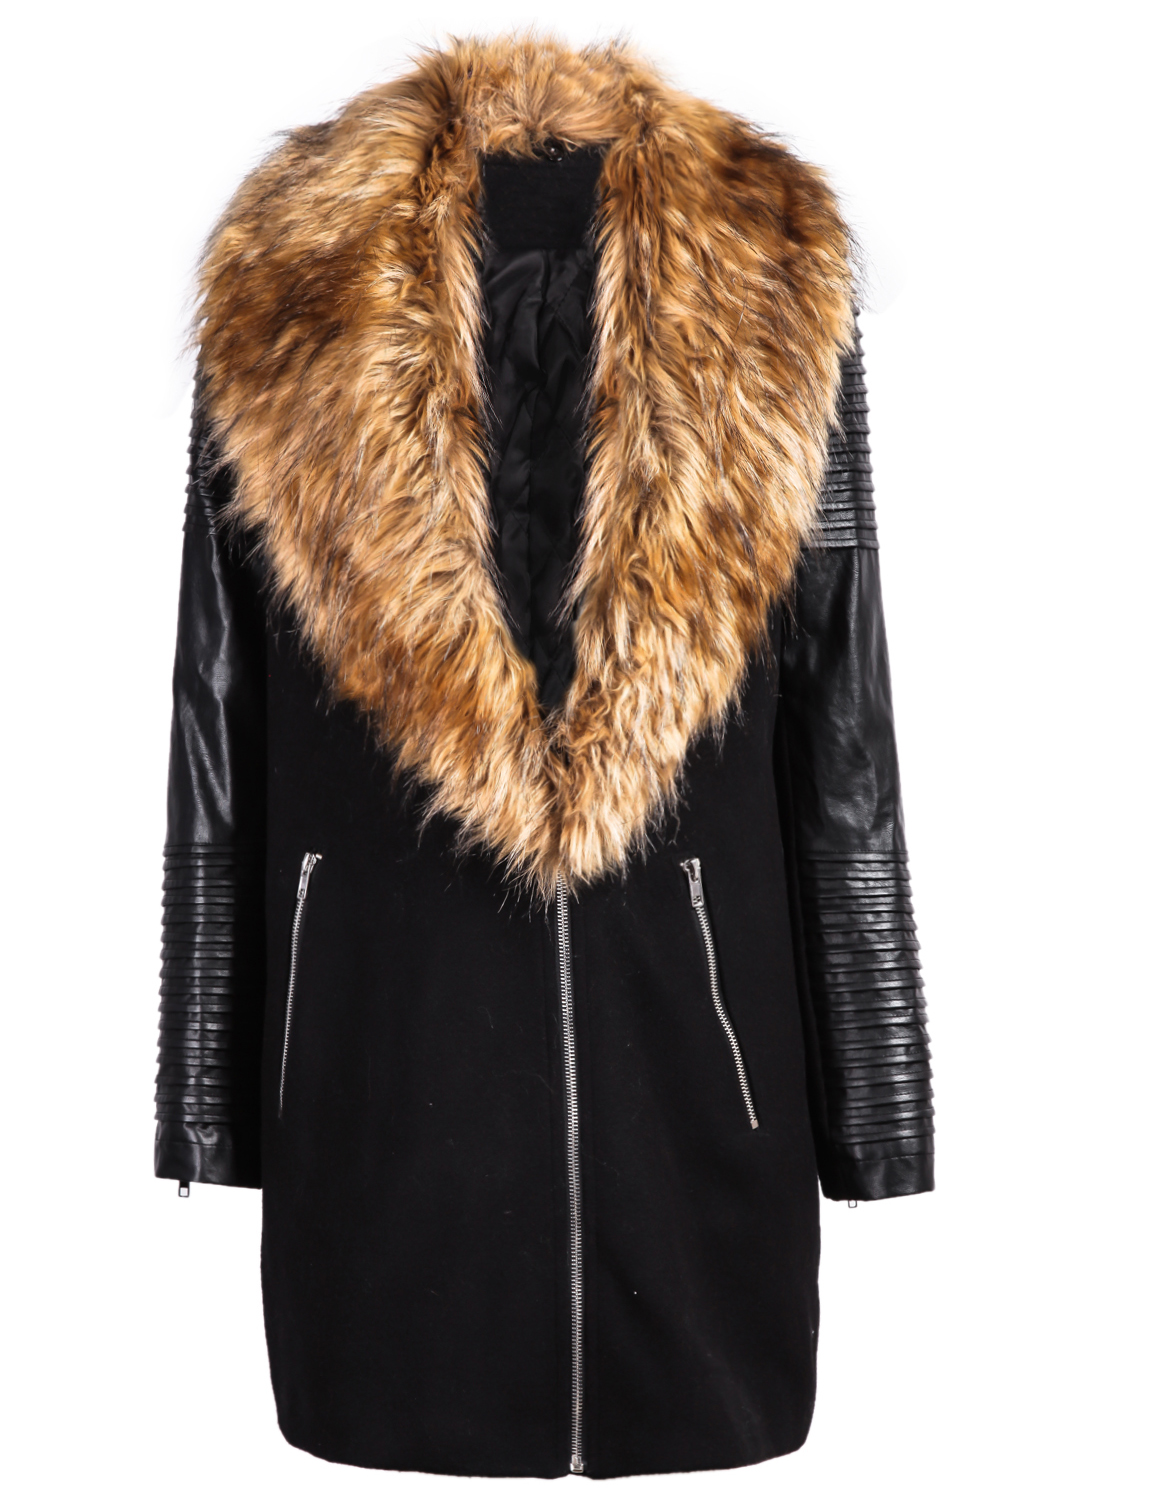 PU Leather Sleeve Faux Fur Lapel Coat - Sheinside.com